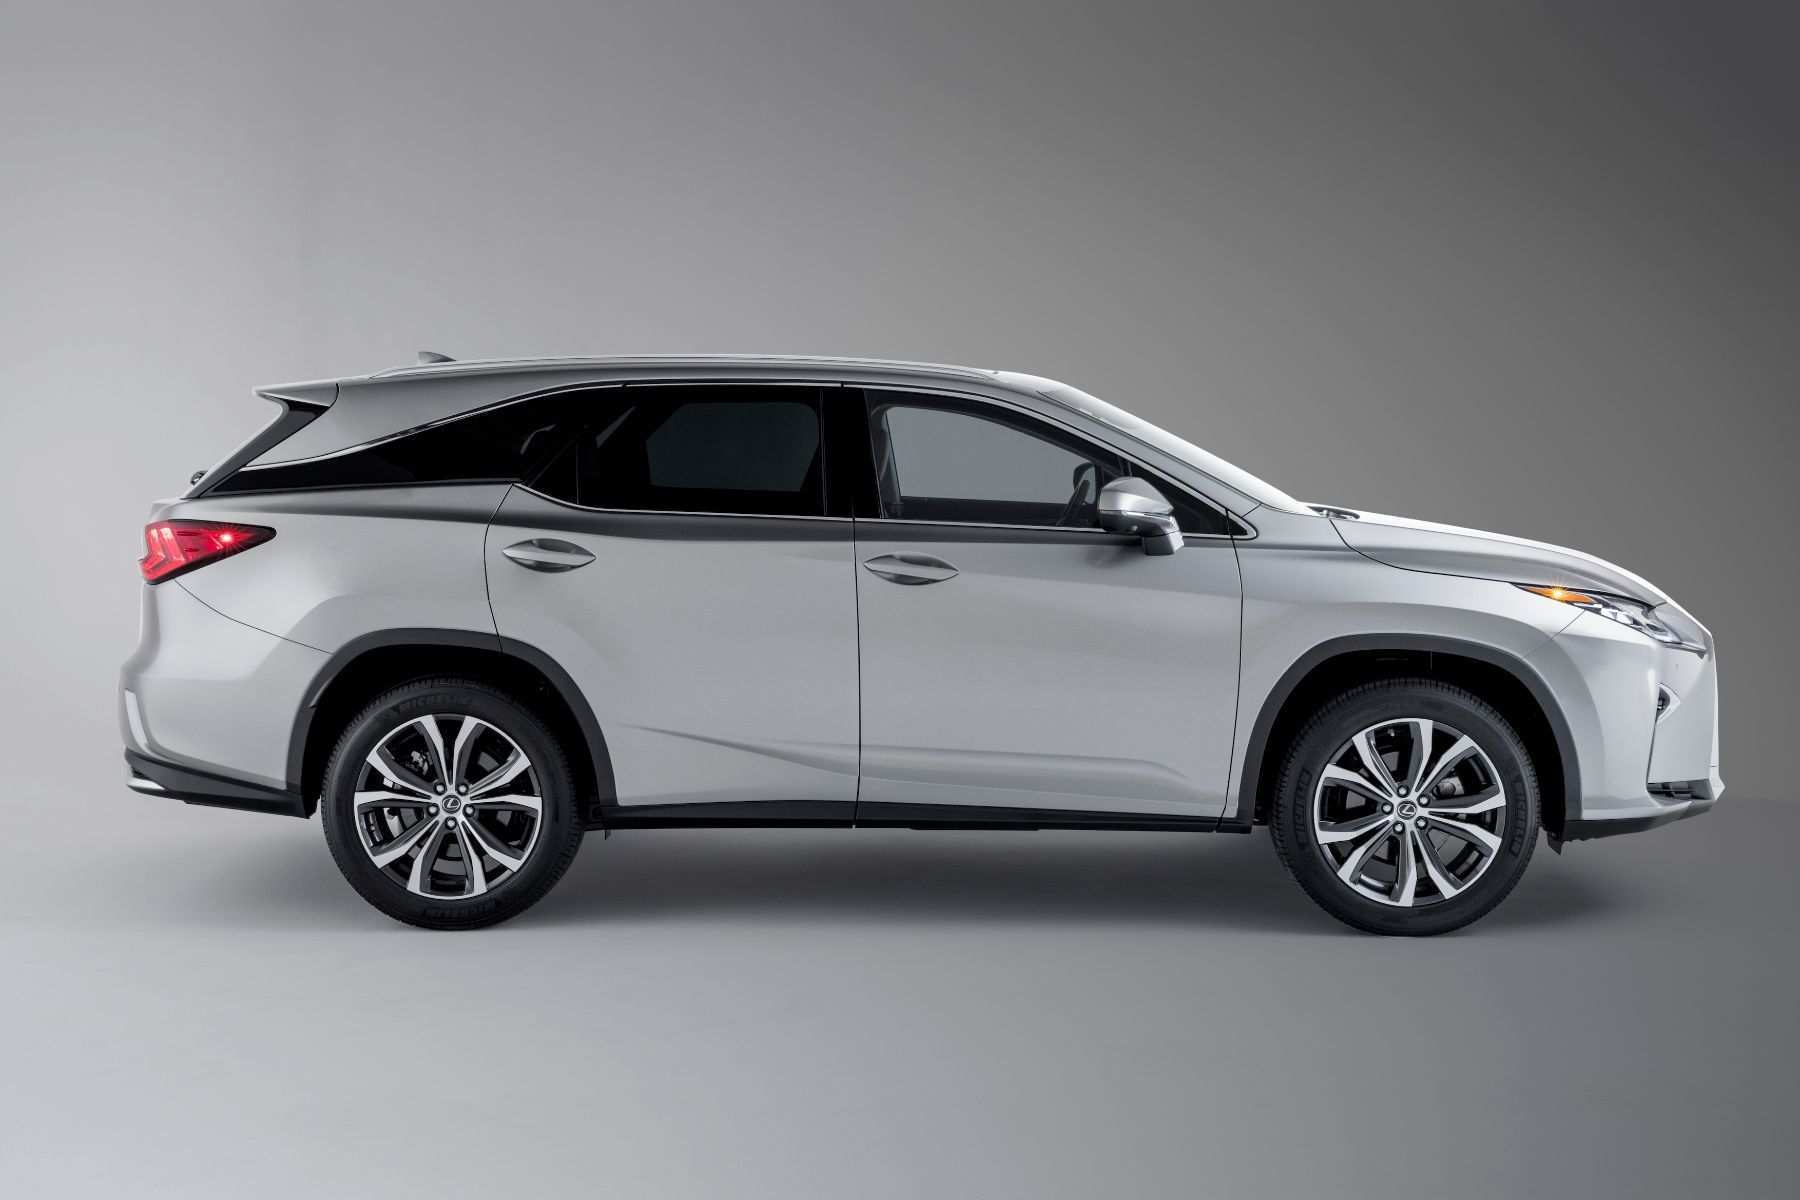 34 Best Review 2019 Lexus Rx L Price and Review by 2019 Lexus Rx L